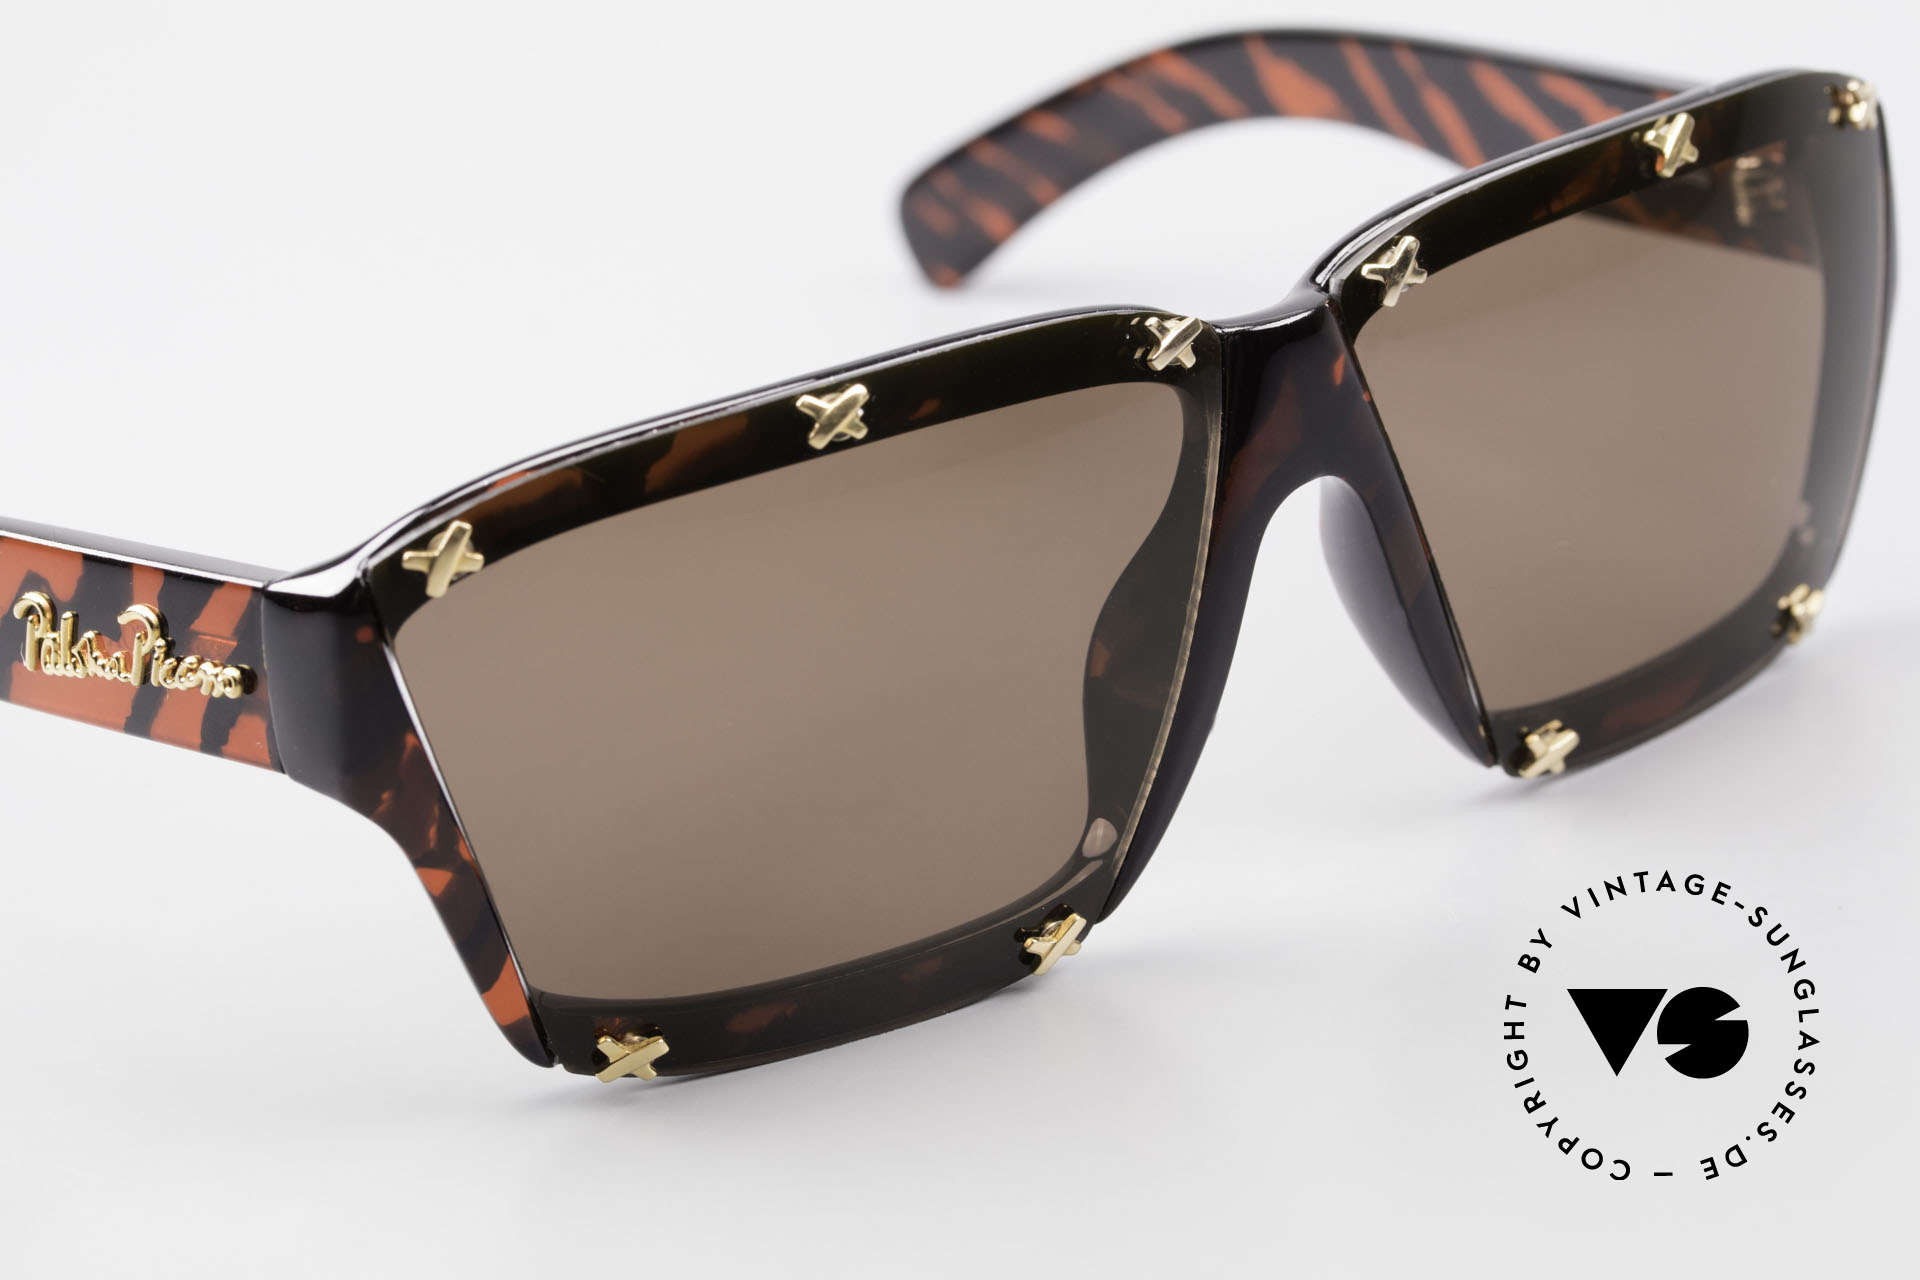 Paloma Picasso 3702 No Retro Sunglasses Vintage, of course never worn (as all our old 90's treasures), Made for Women